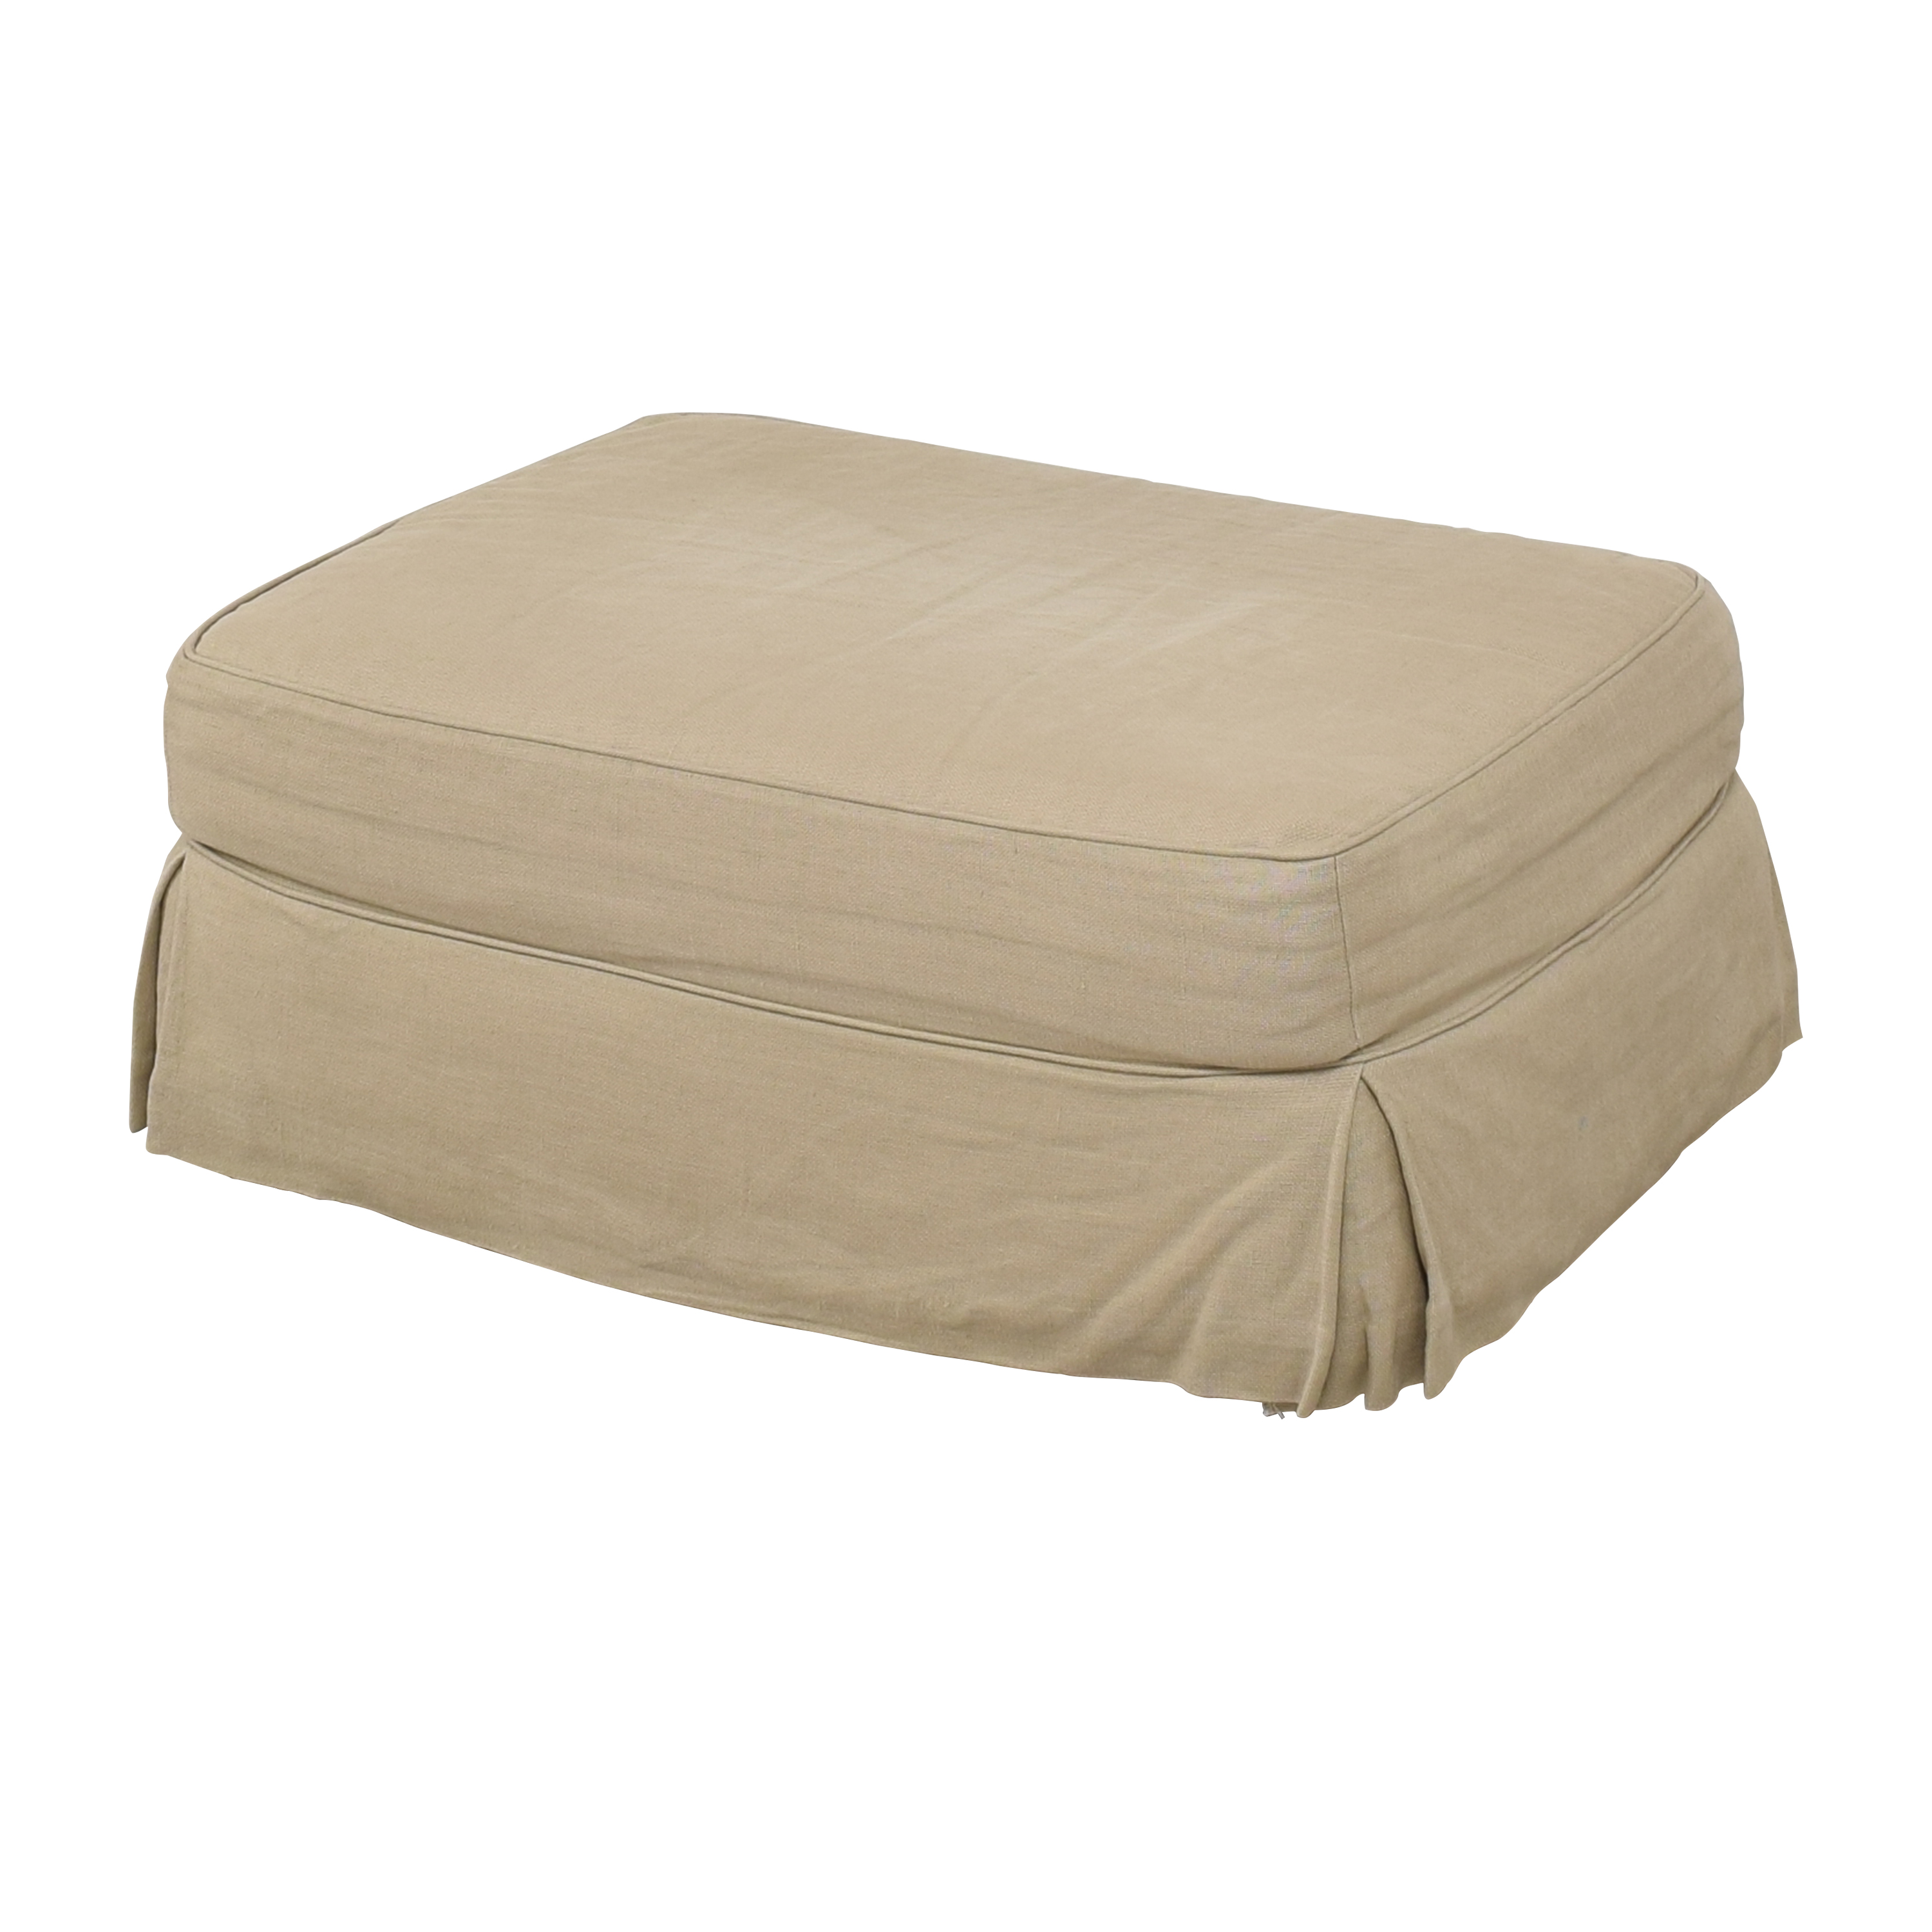 Restoration Hardware Restoration Hardware Grand Scale Roll Arm Slipcovered Ottoman dimensions